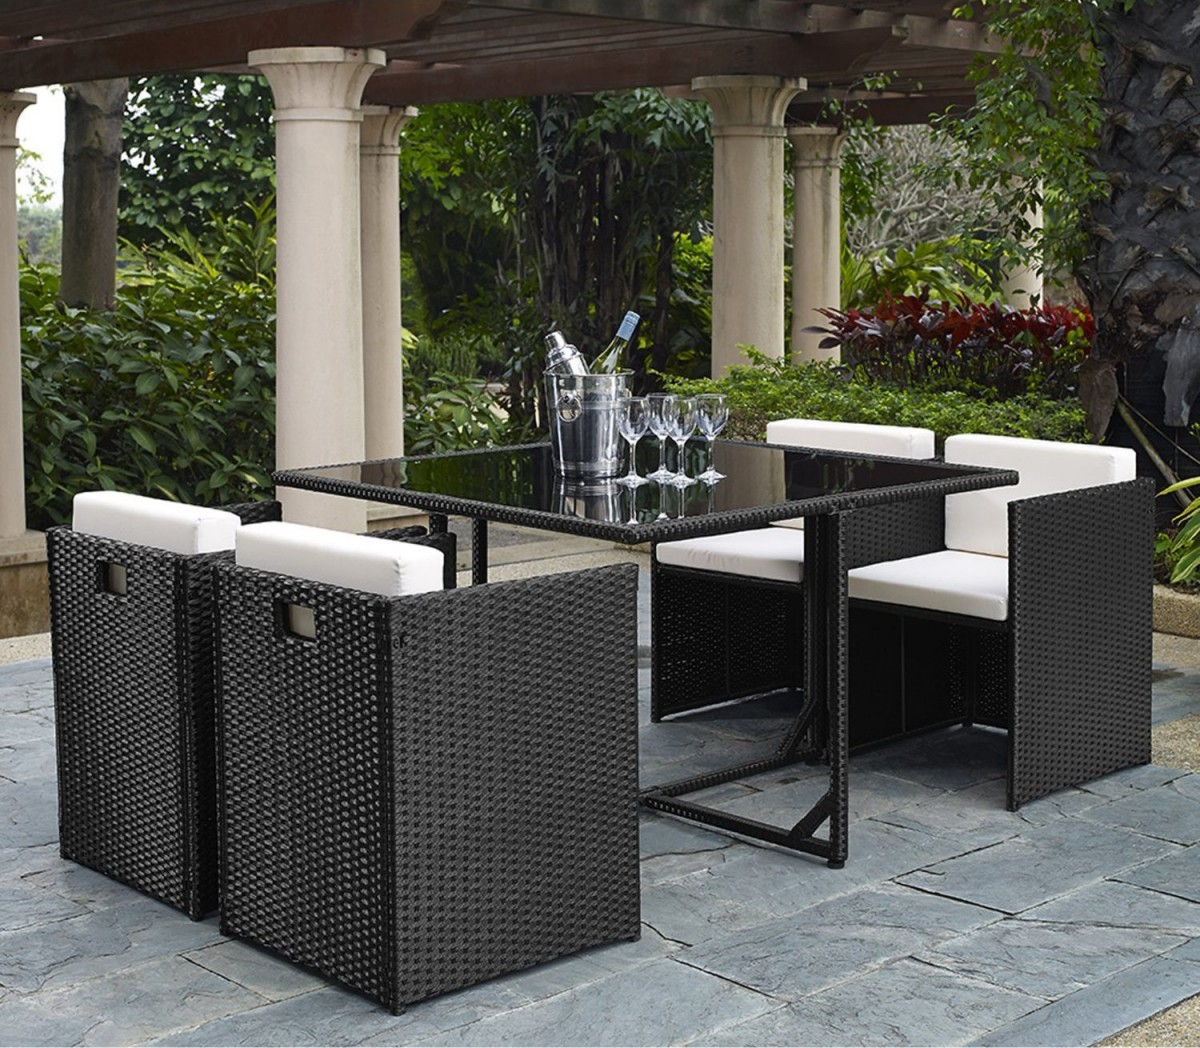 5 Piece Rattan Cube Garden Furniture Set W Stowaway Chairs